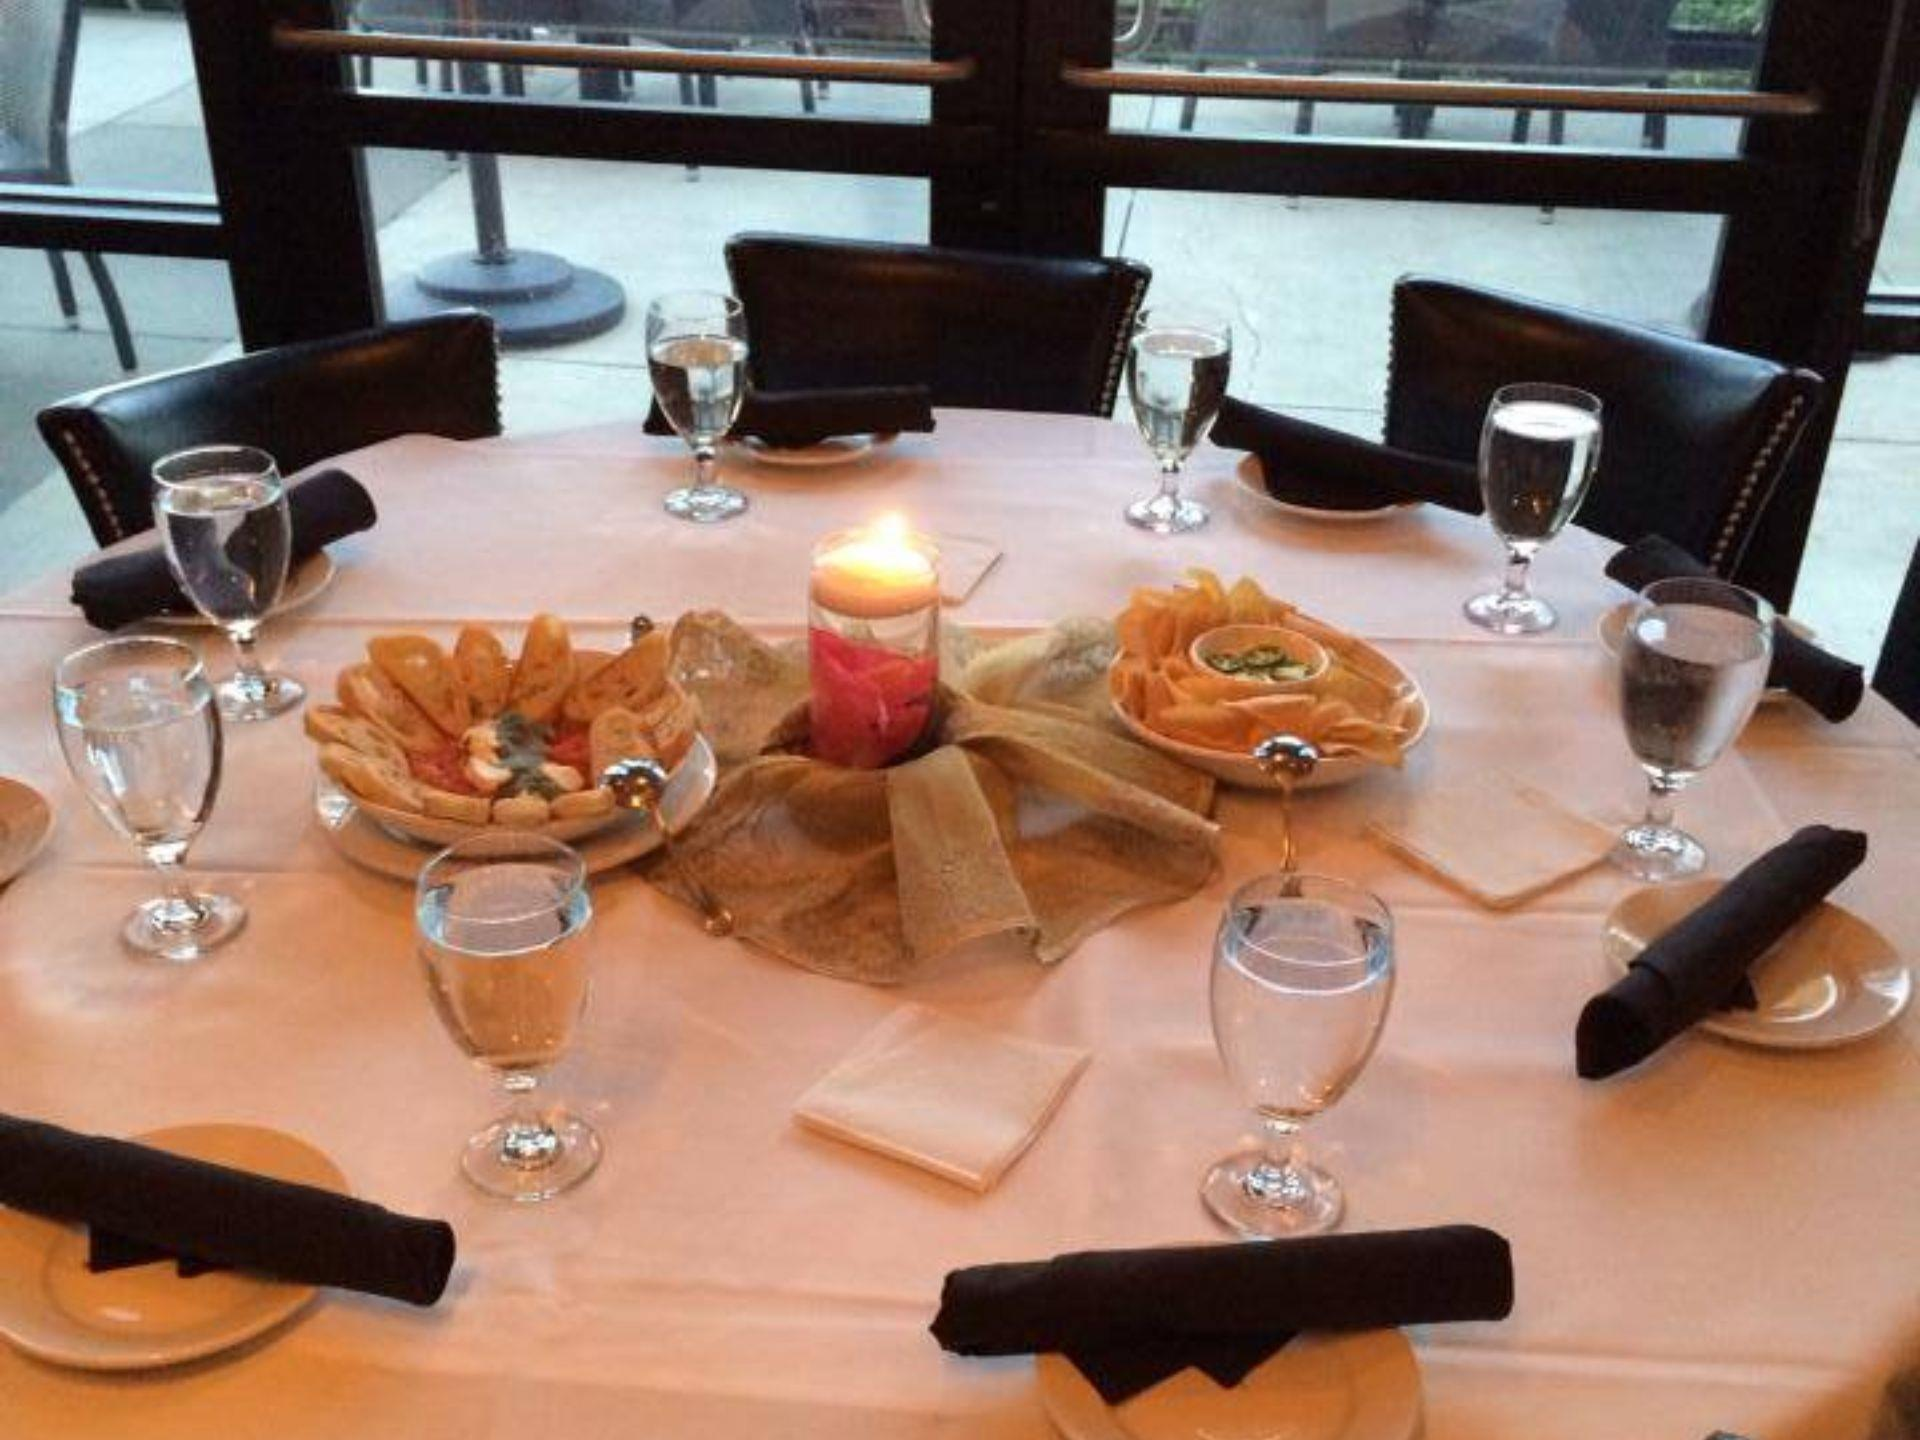 Table setting with white table cloth, a candle and assorted appetizers